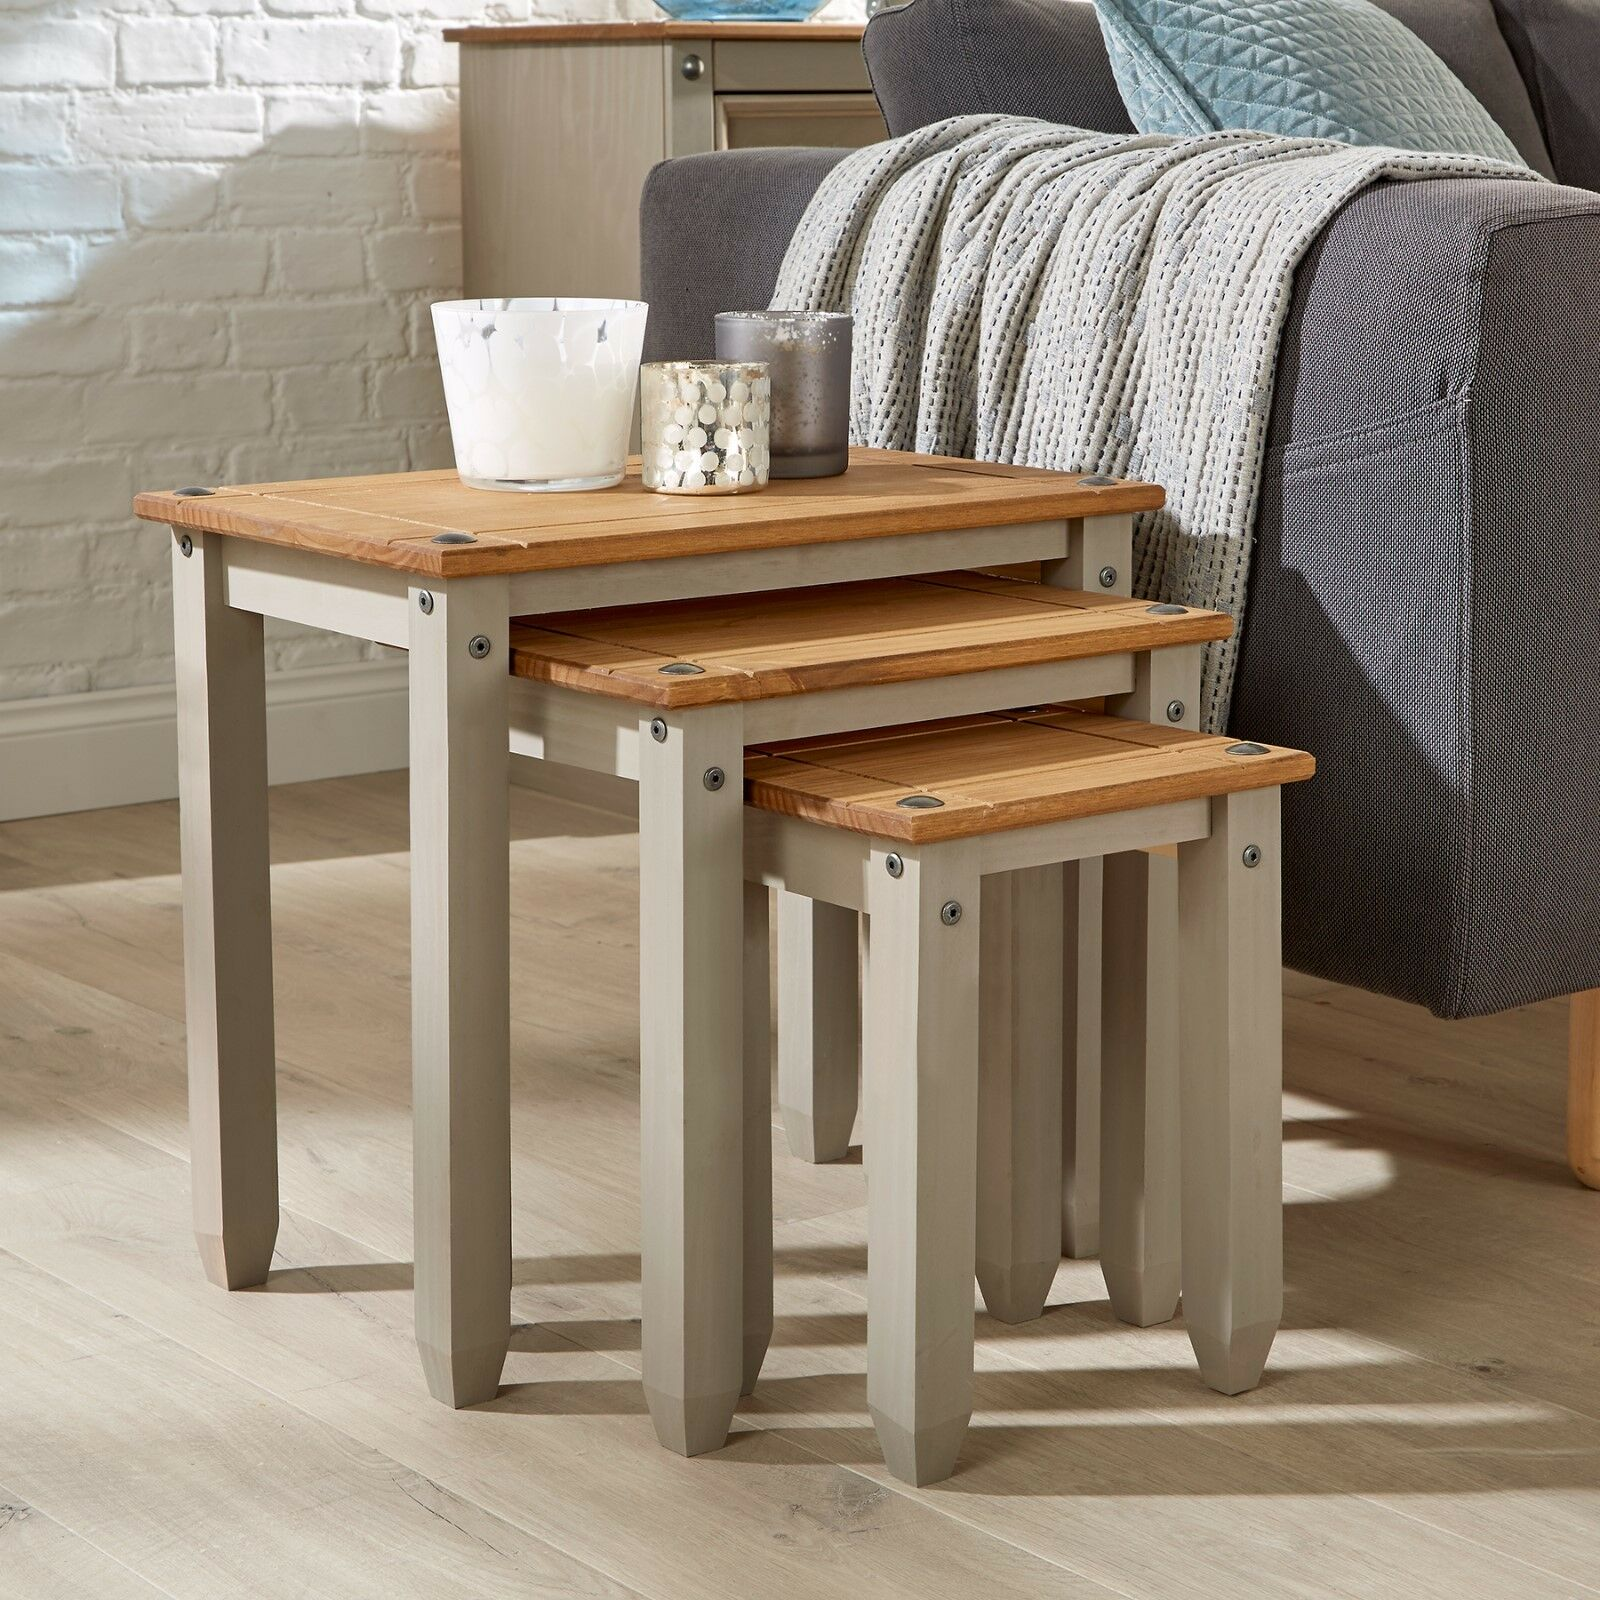 CORONA GREY PINE Nest of Tables Set of 3 Occasional Coffee Side ...